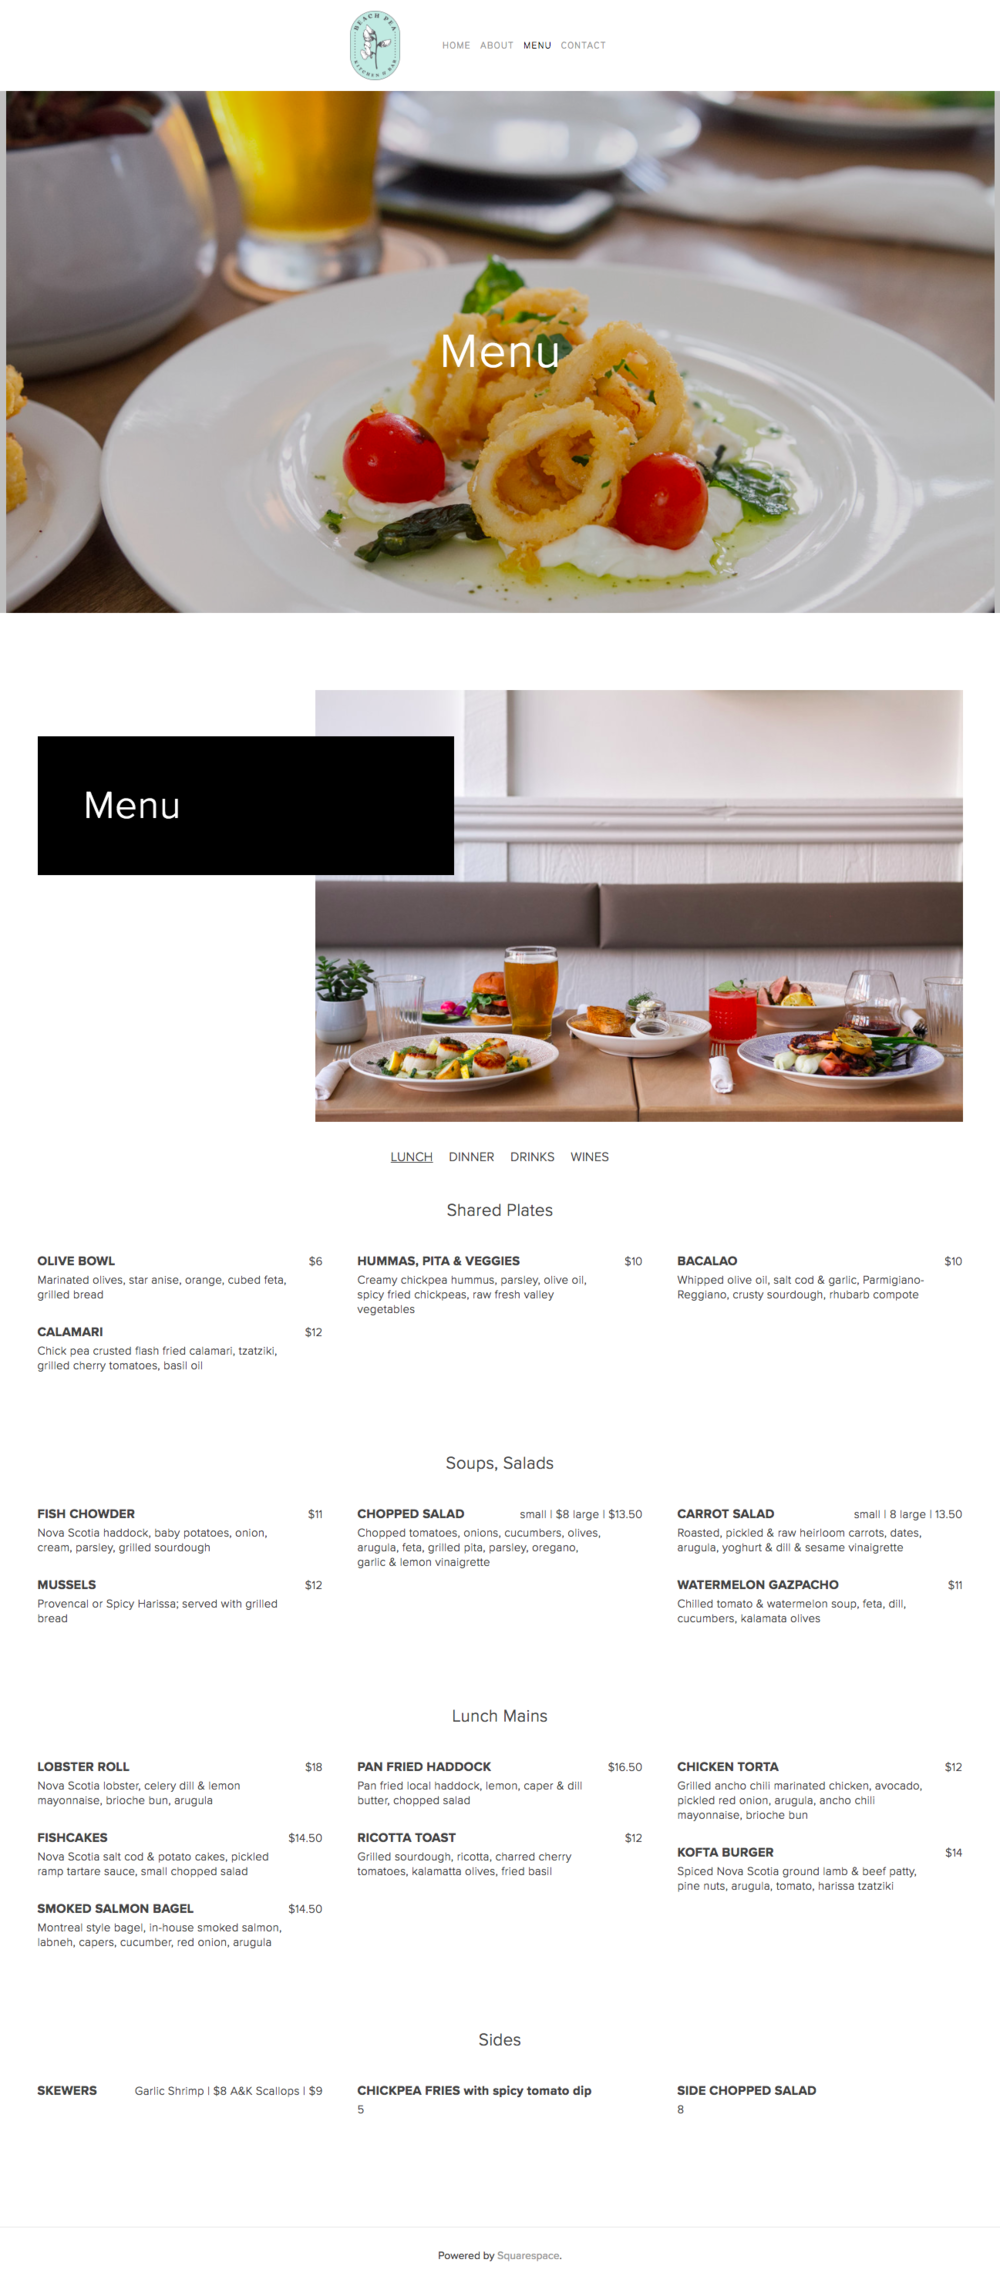 screencapture-beachpeakitchen-menu-2018-10-04-12_54_25.png